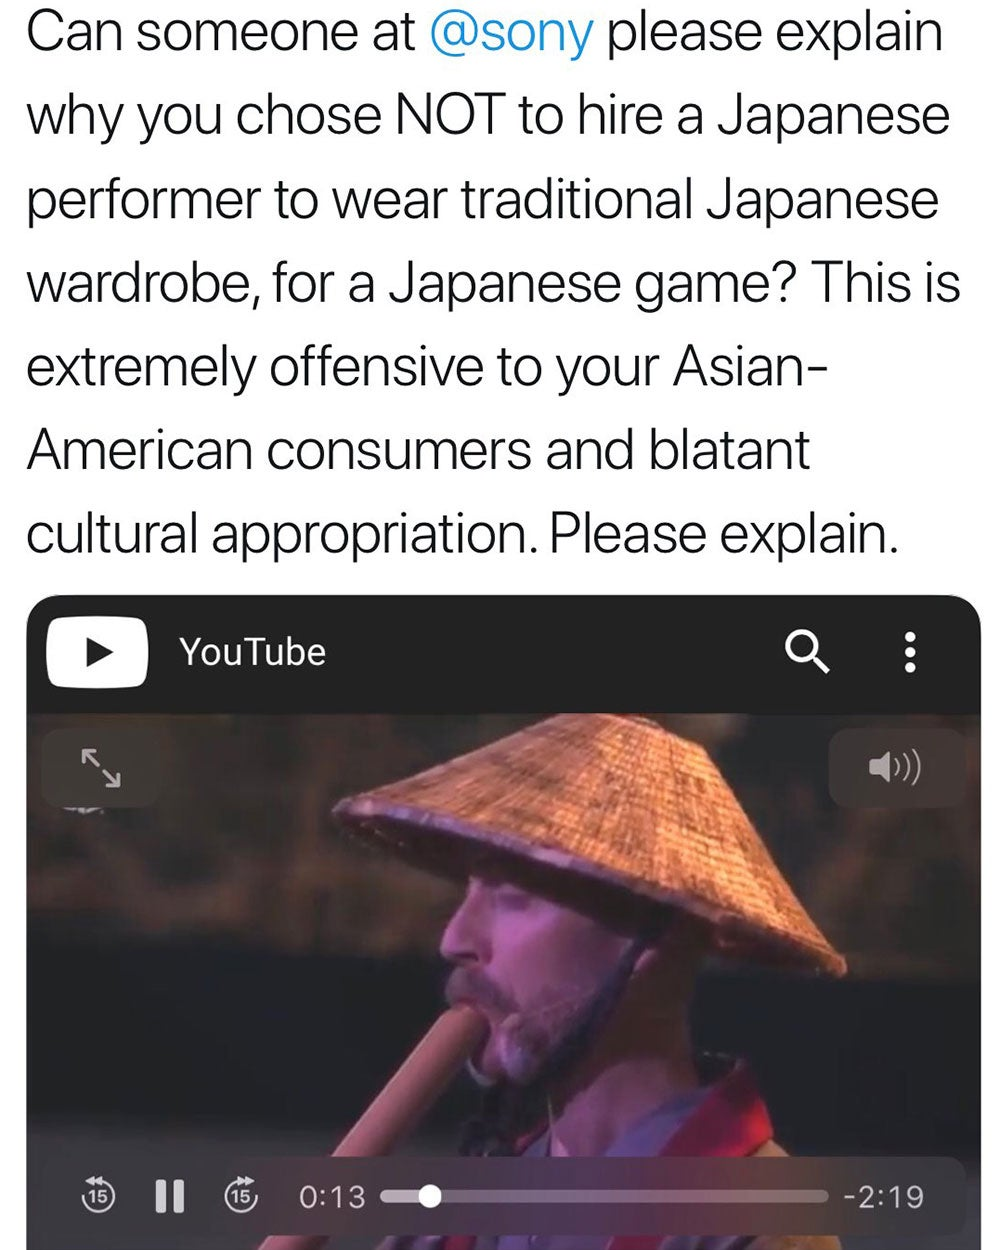 Women accuses Sony of cultural appropriation and gets a